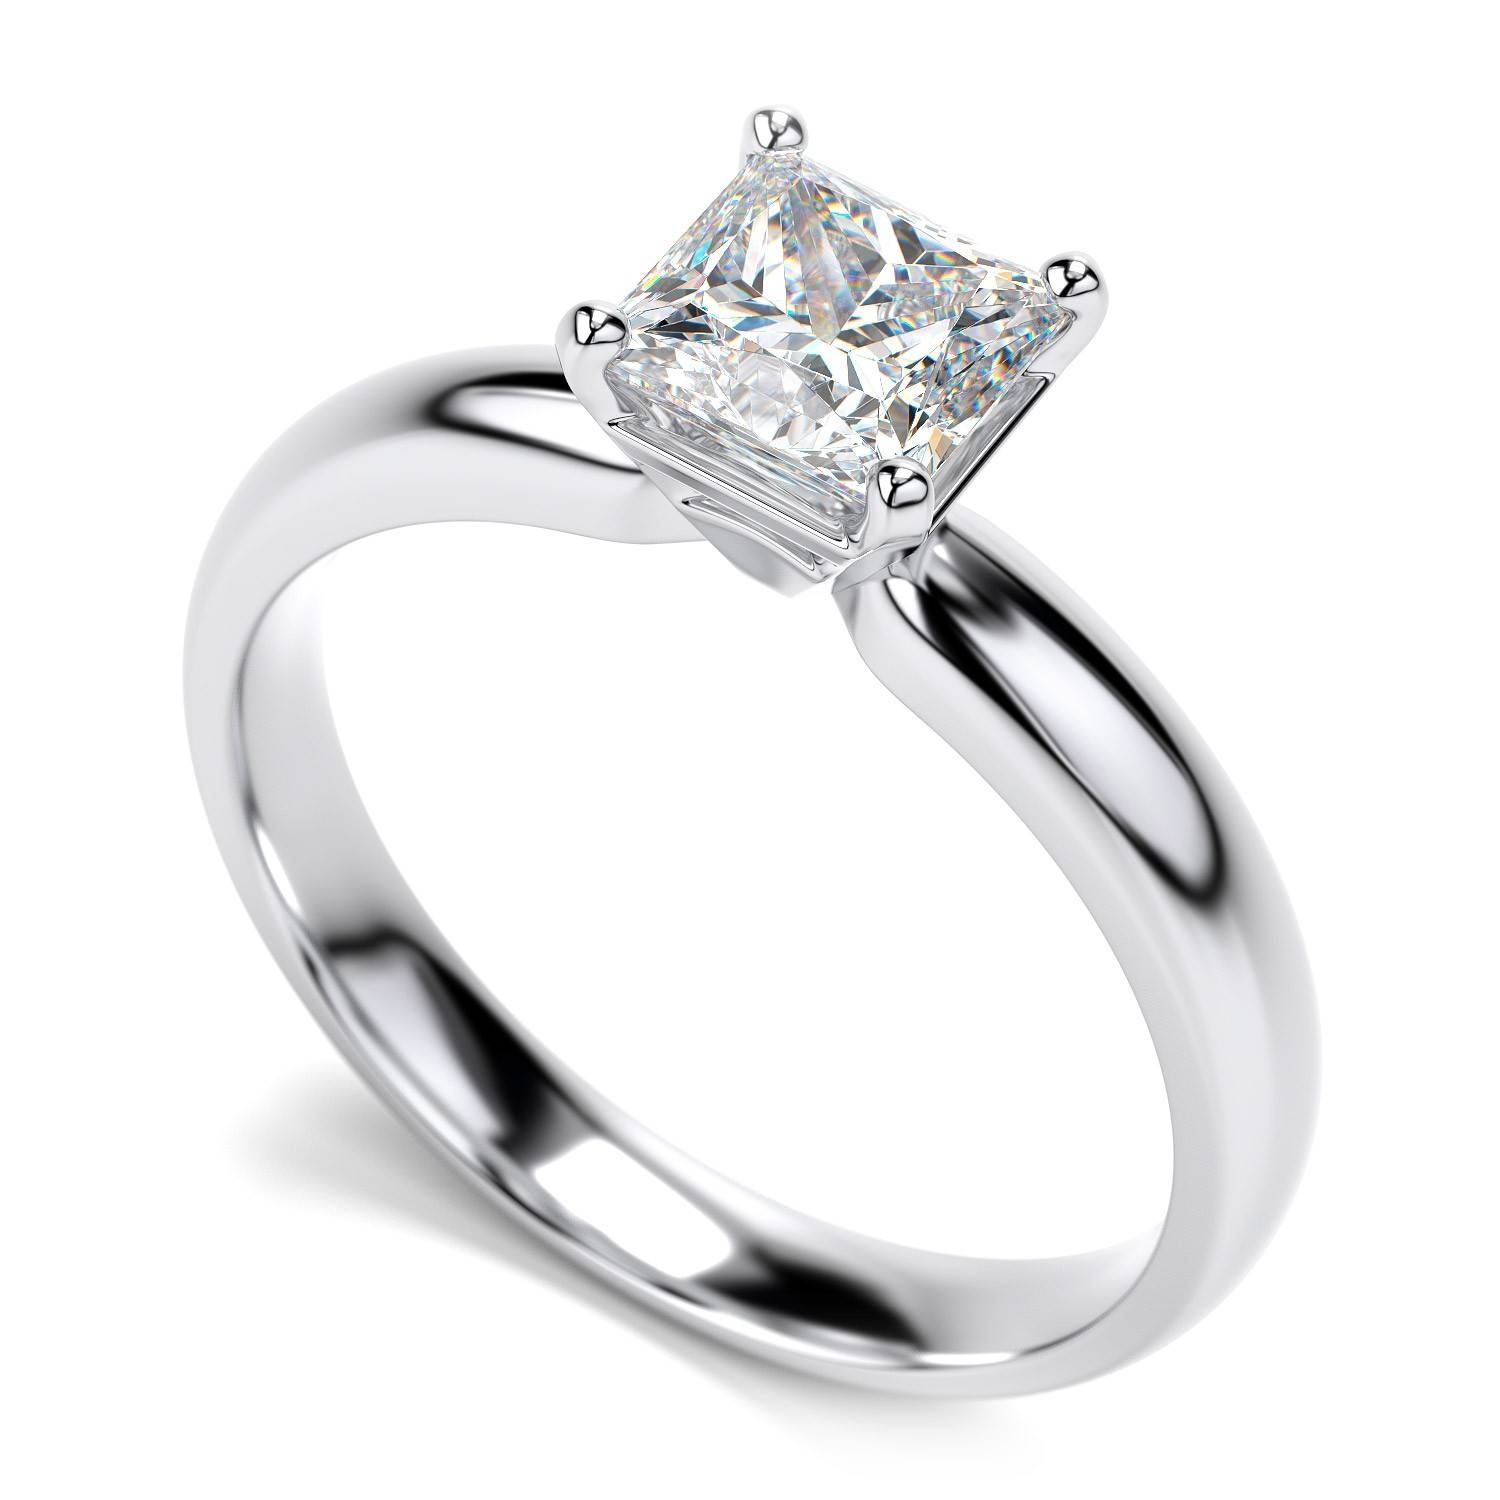 Princess Cut Engagement Rings With Princess Engagement Rings For Women (Gallery 7 of 15)